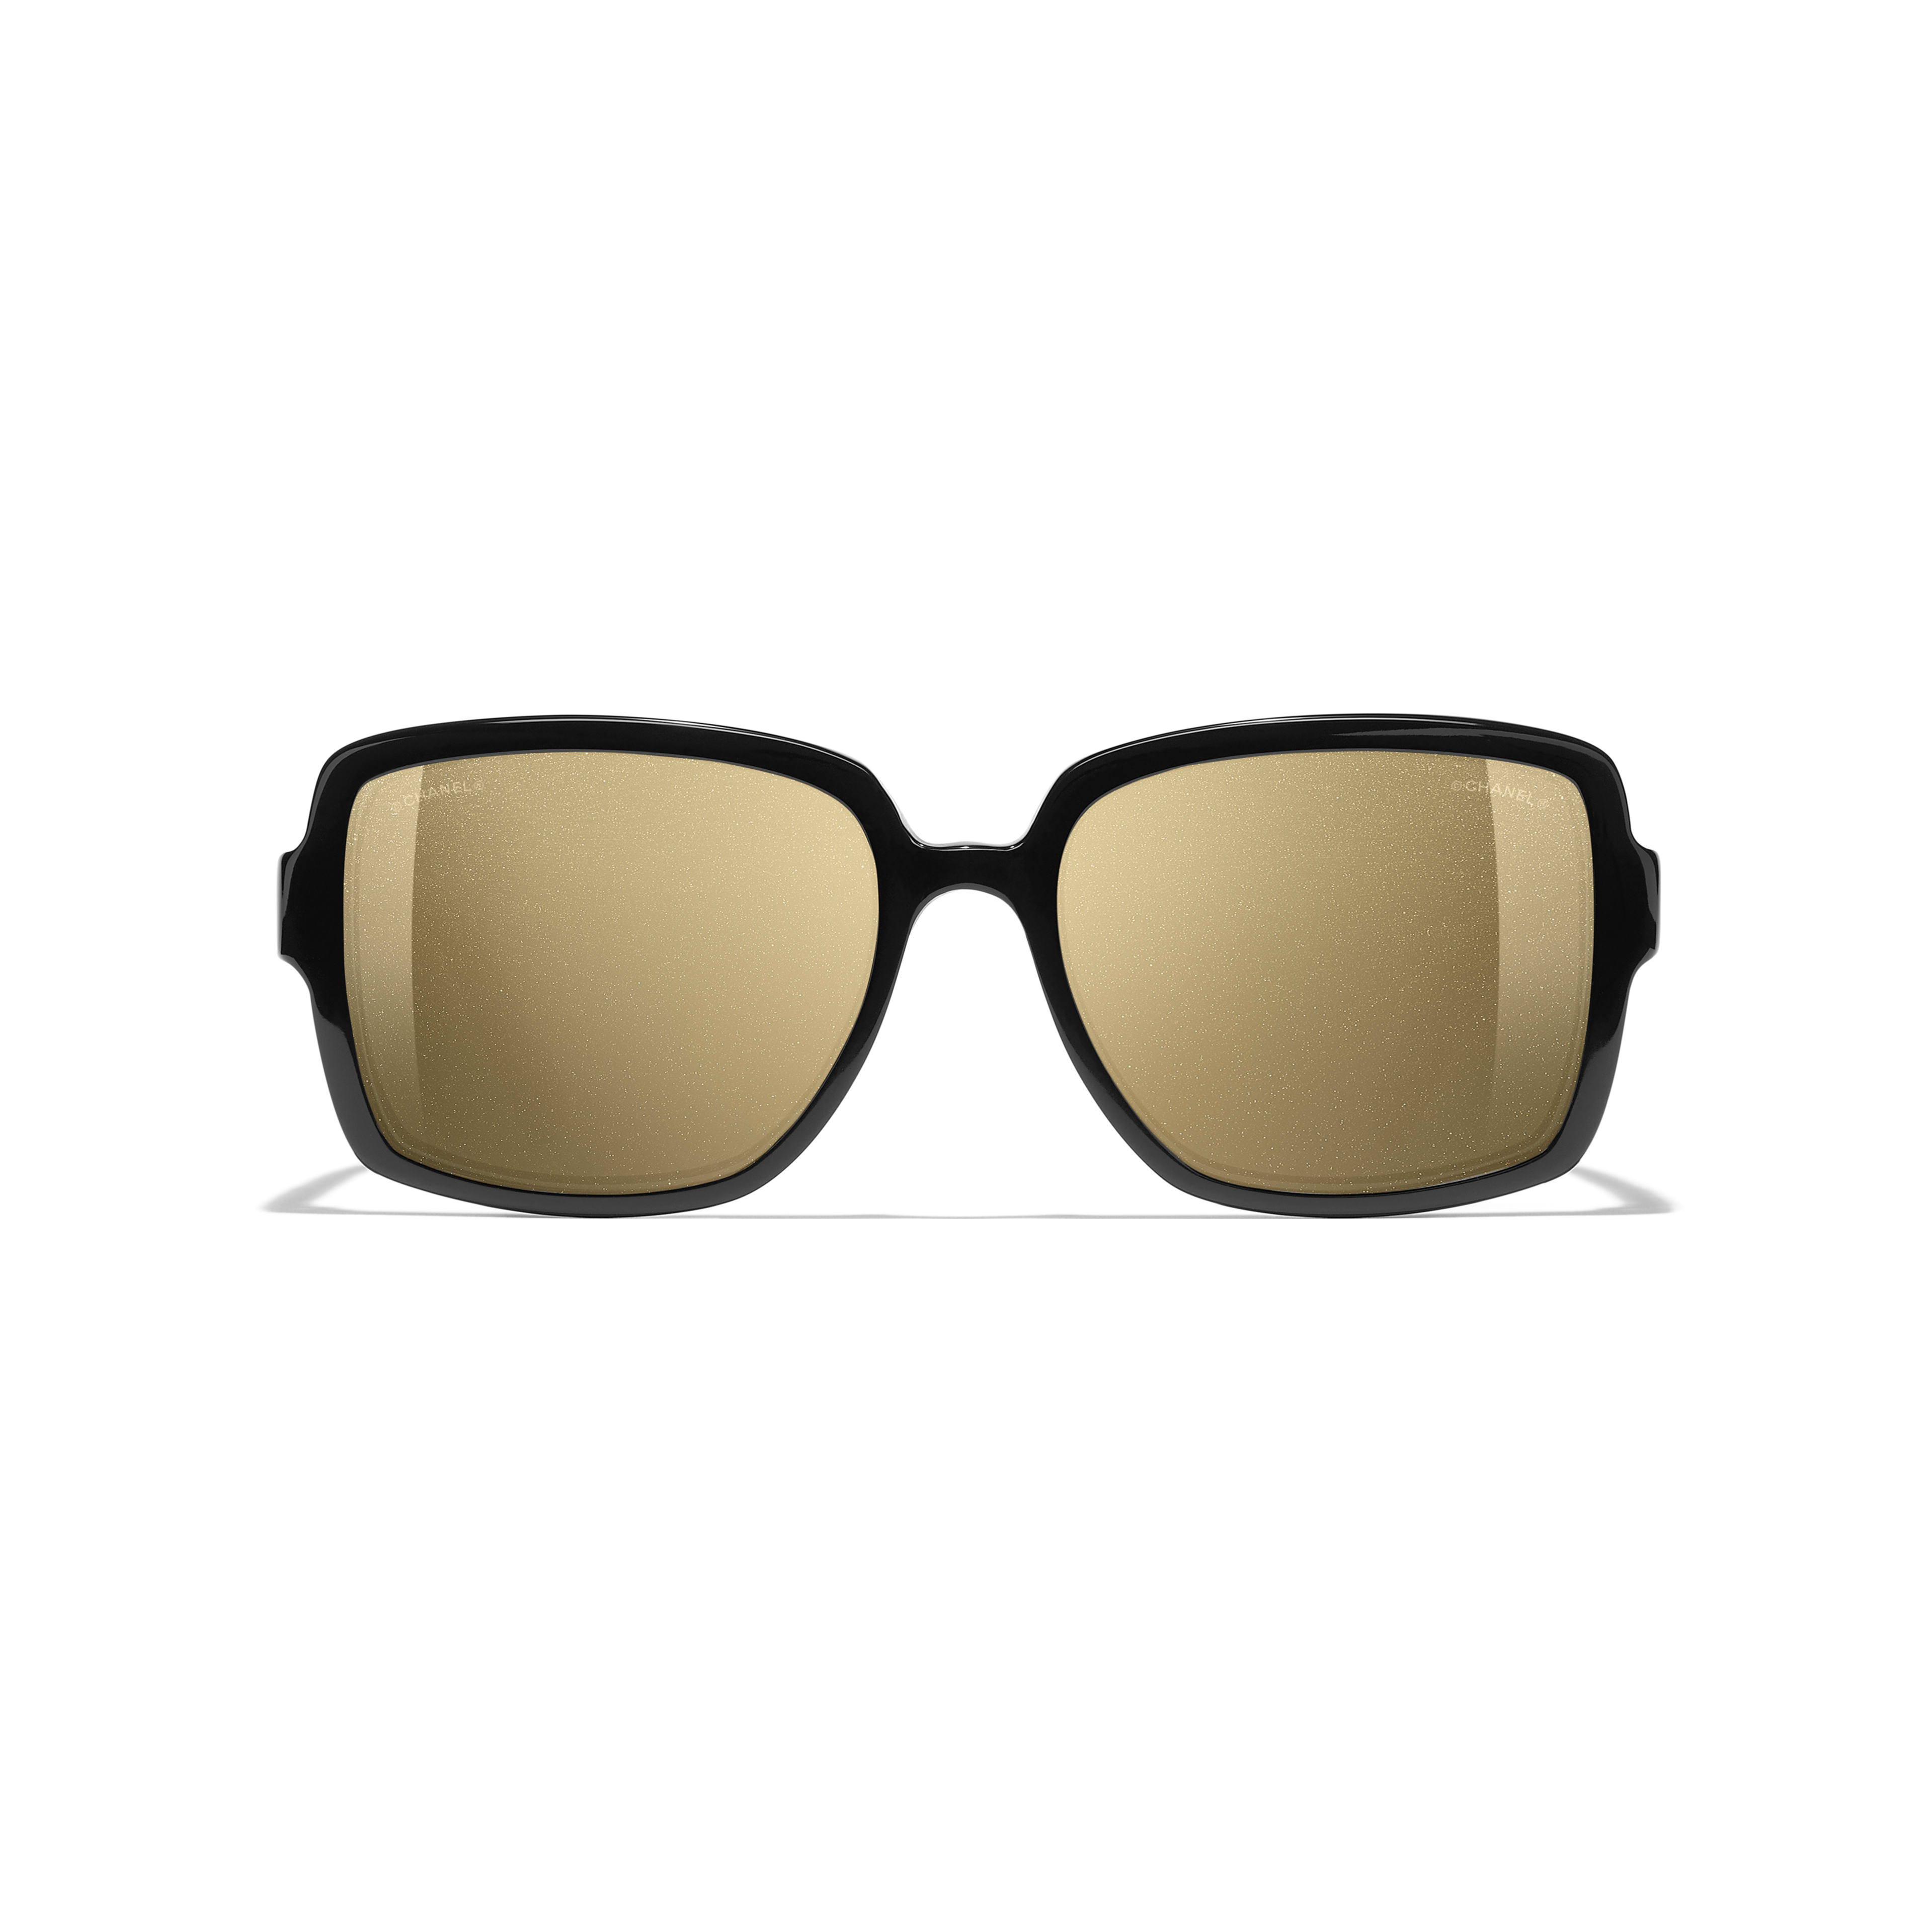 Square Sunglasses - Black - Acetate - Alternative view - see standard sized version